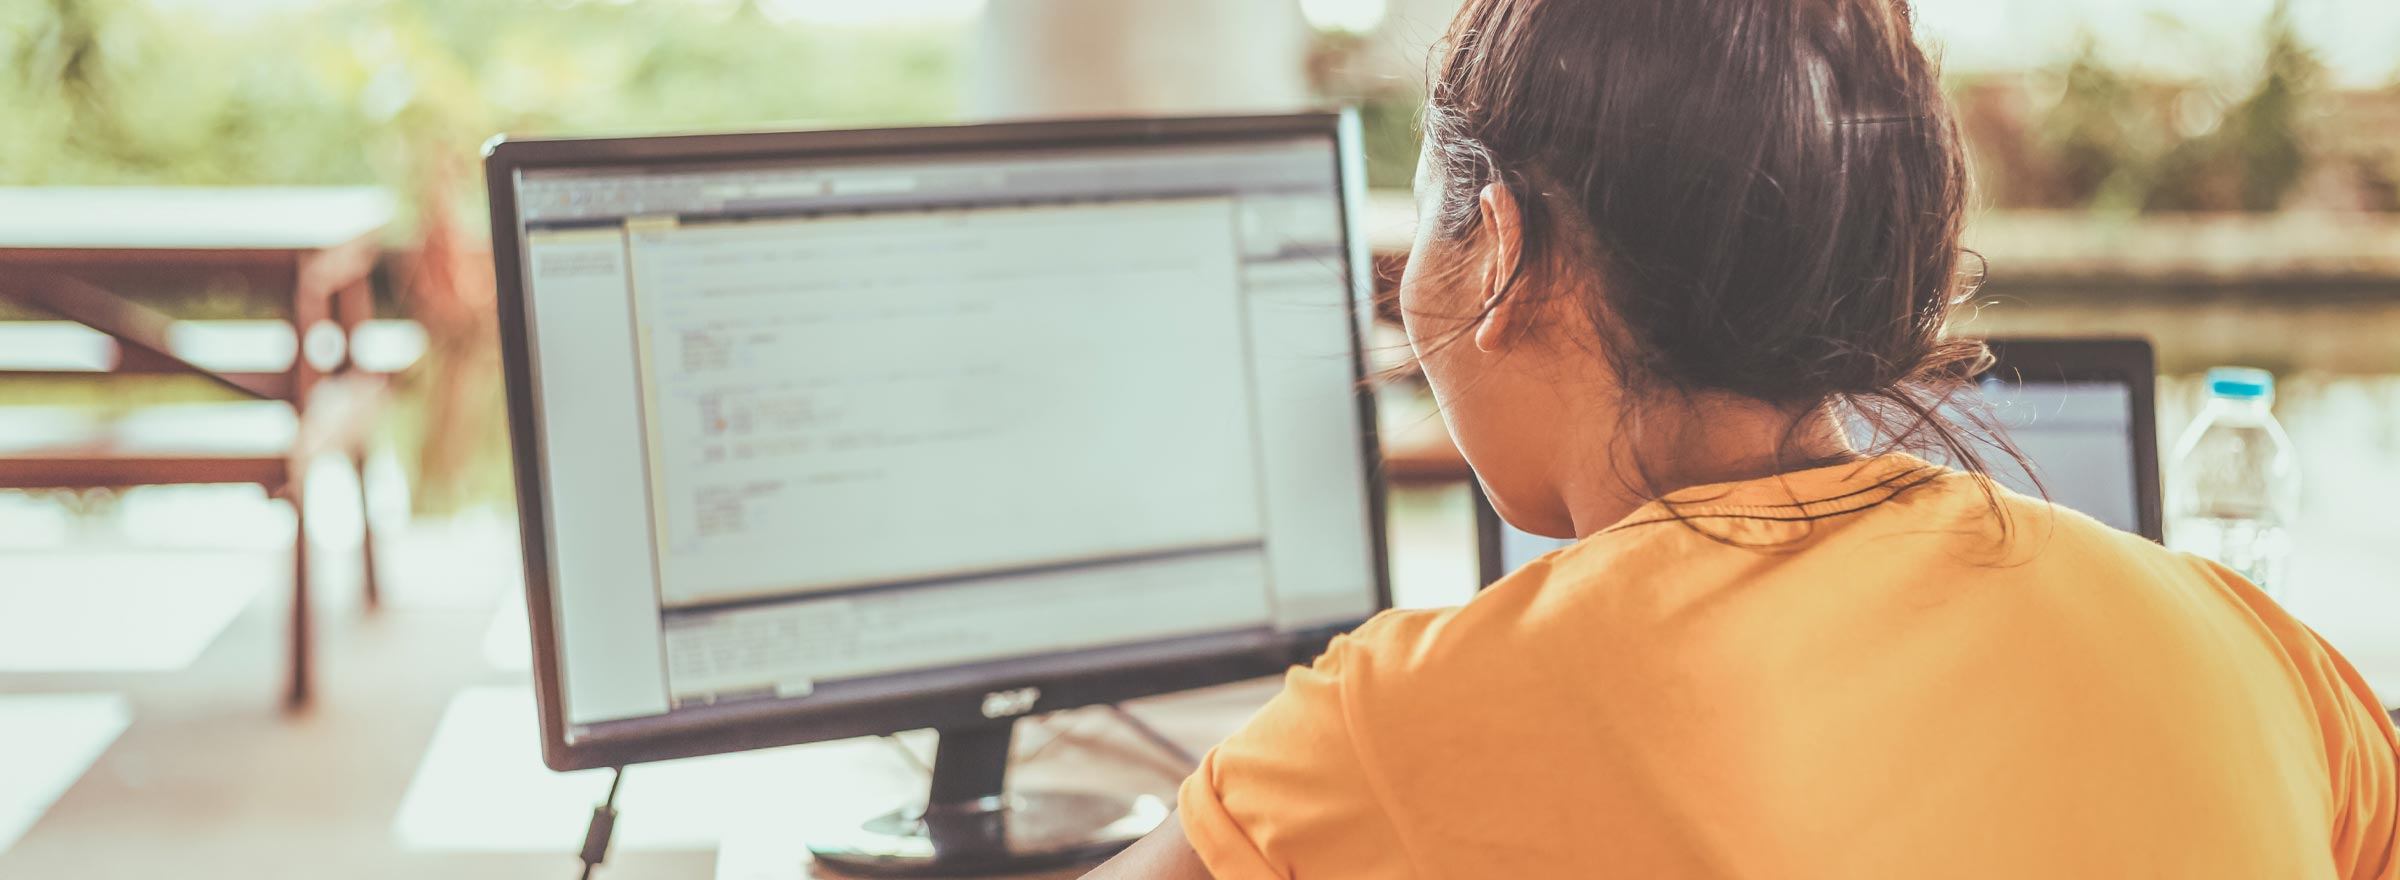 woman looking at code on a computer screen